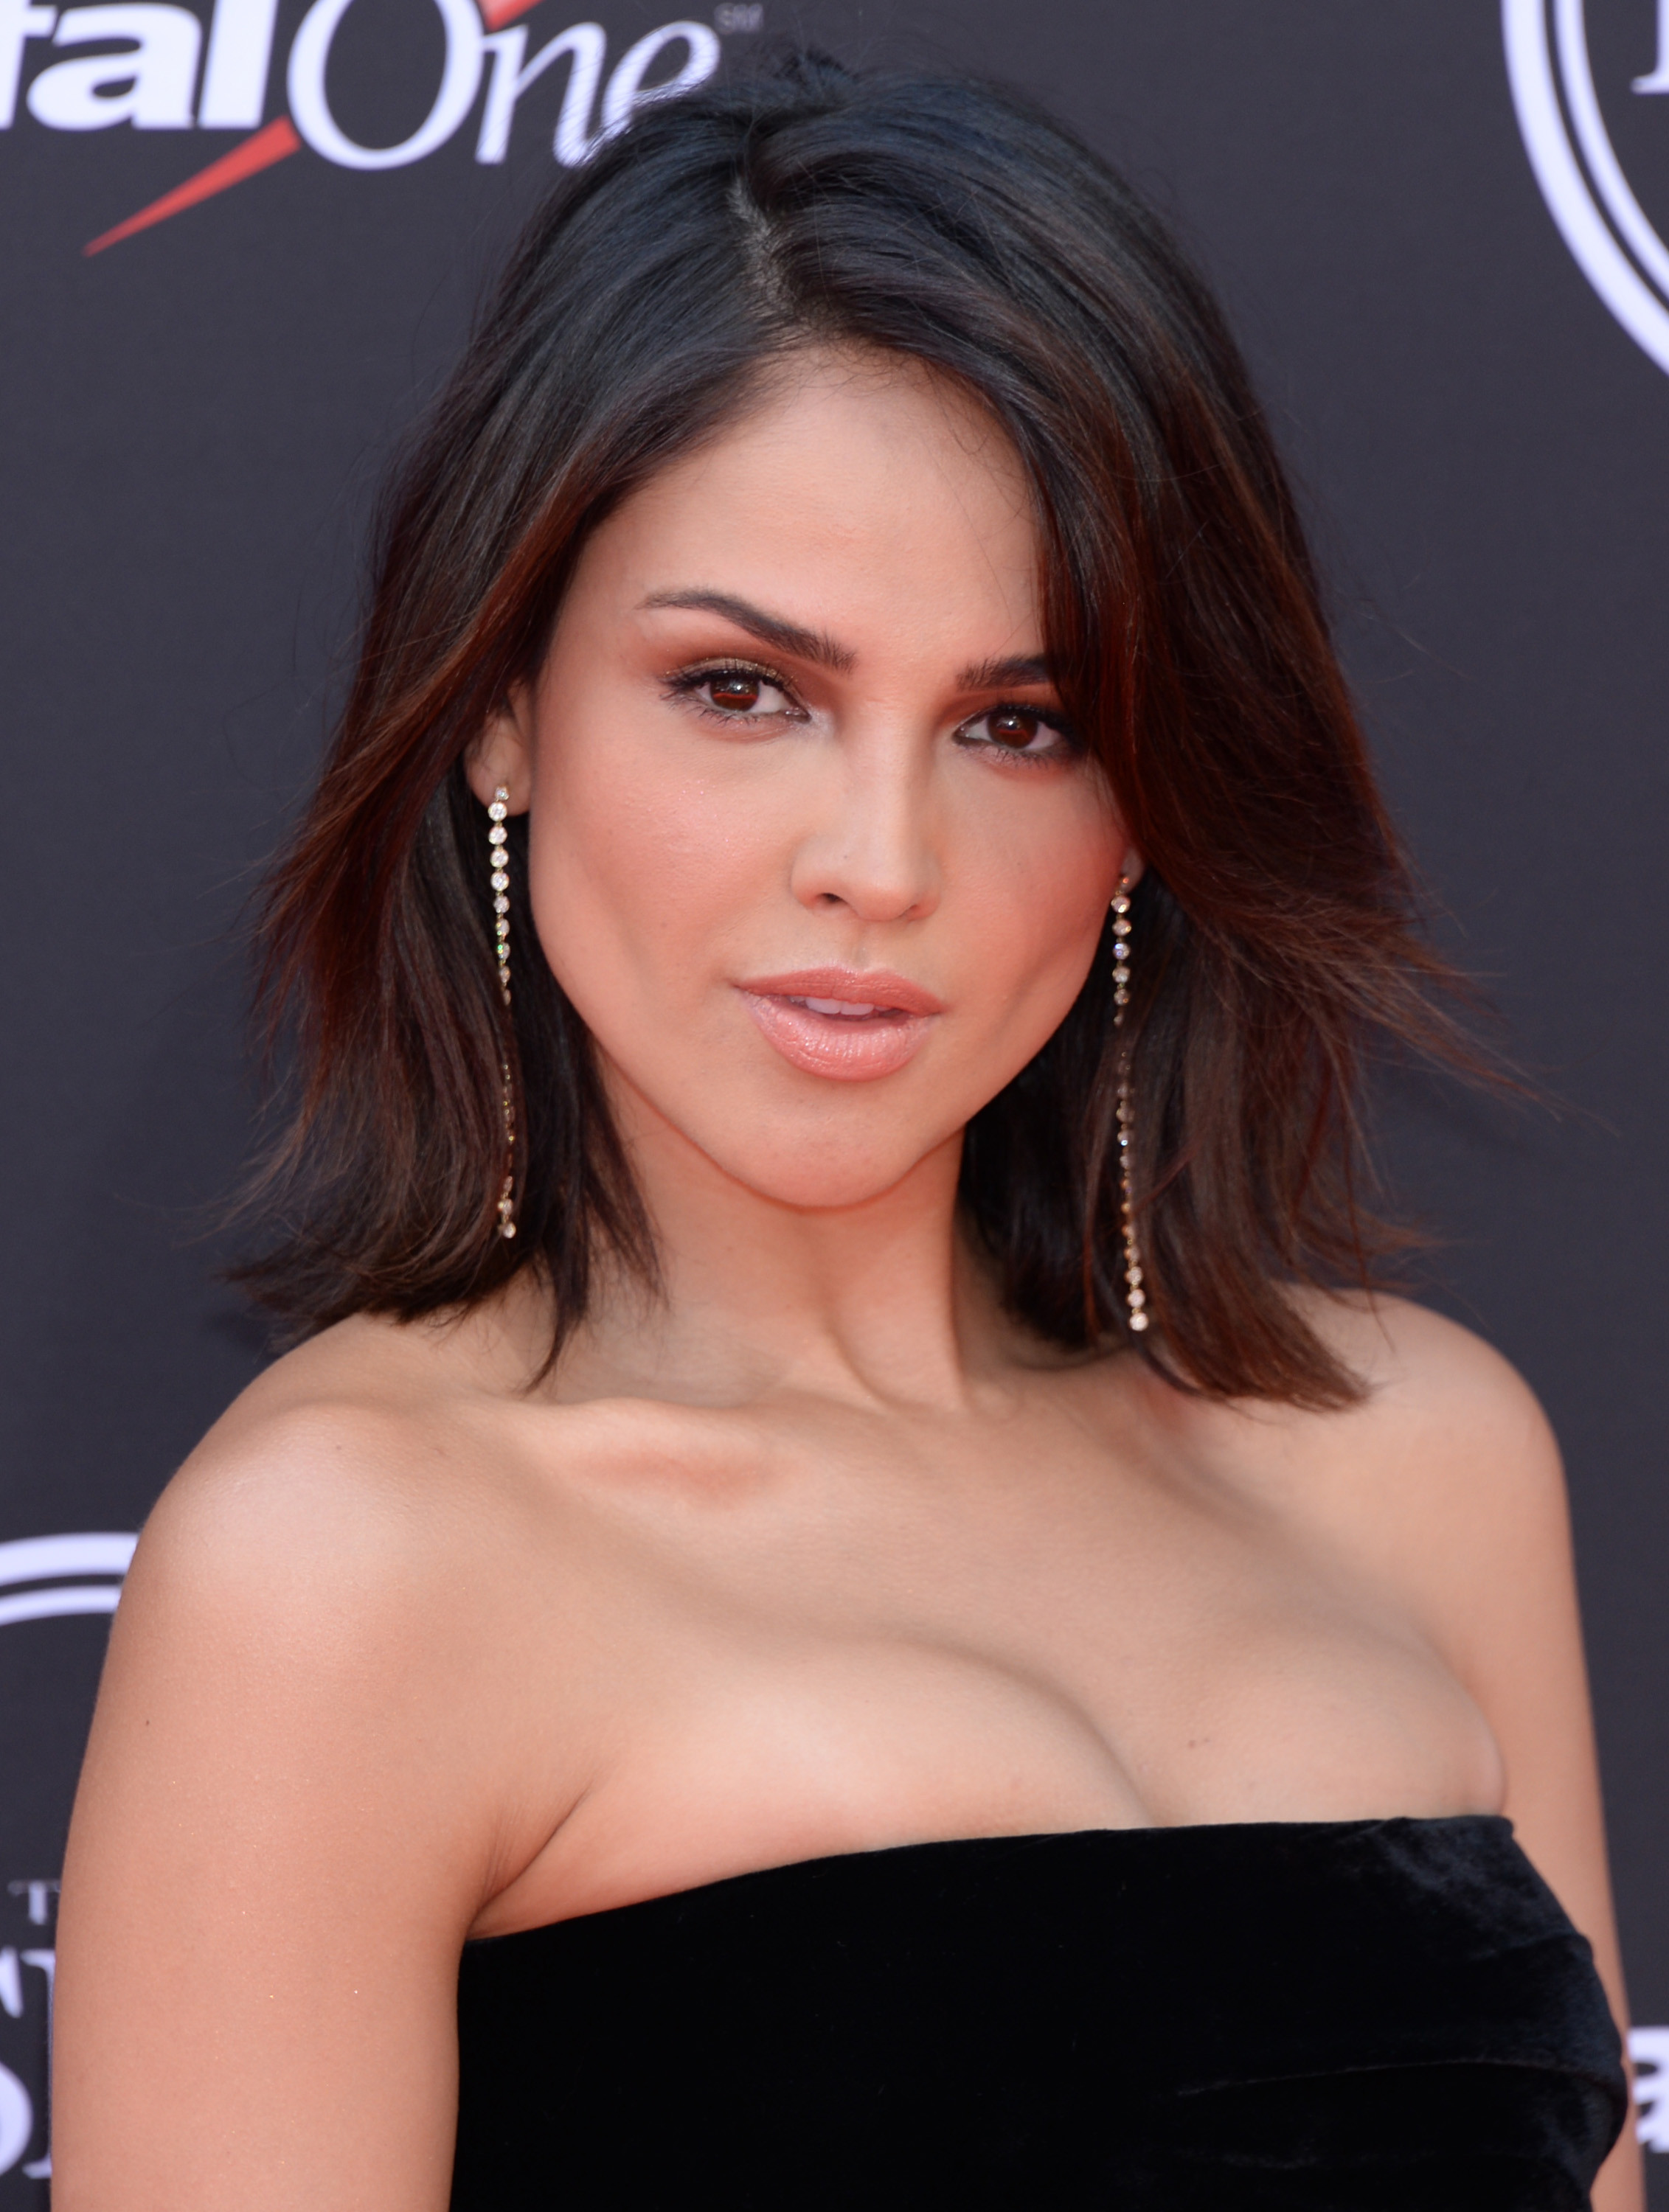 Eiza Gonzalez at 2018 ESPY Awards  - Sexy Actress Pictures | Hot Actress Pictures - ActressSnaps.com